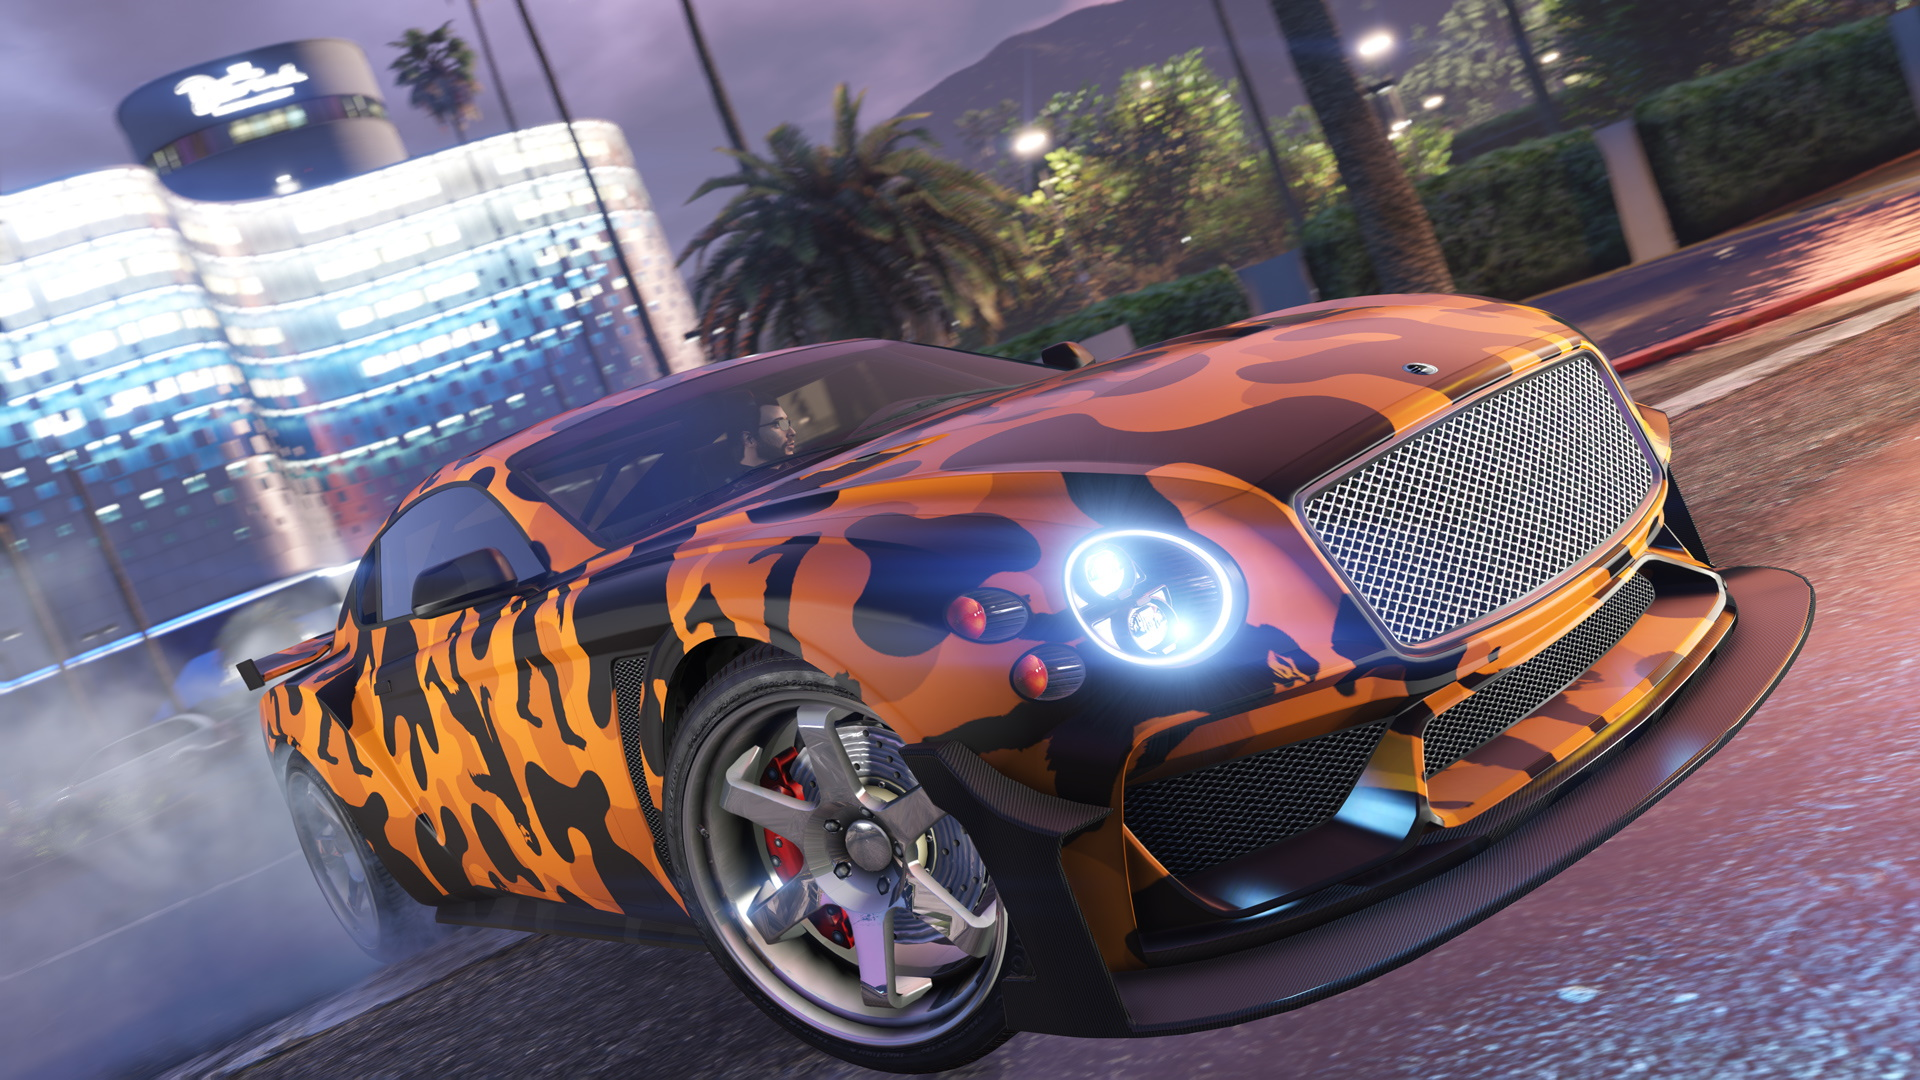 GTA Online's 'Diamond Program' offers exclusive rewards for